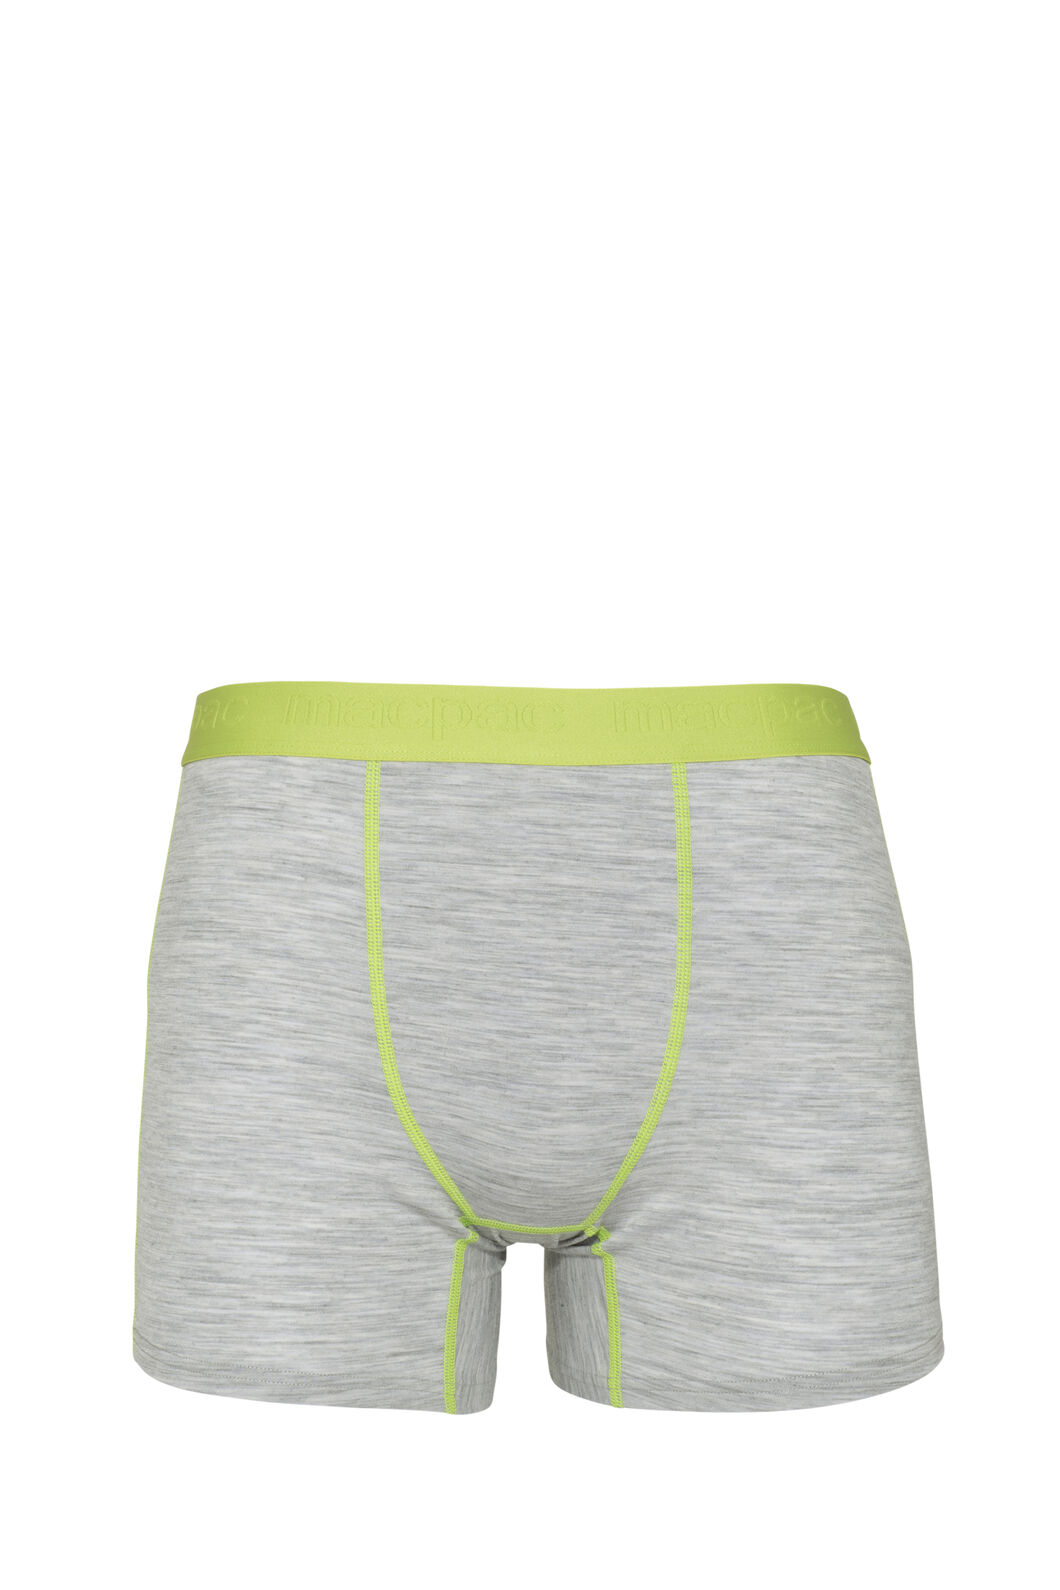 Macpac 180 Merino Boxers — Men's, Light Grey Marle/Macaw Green, hi-res